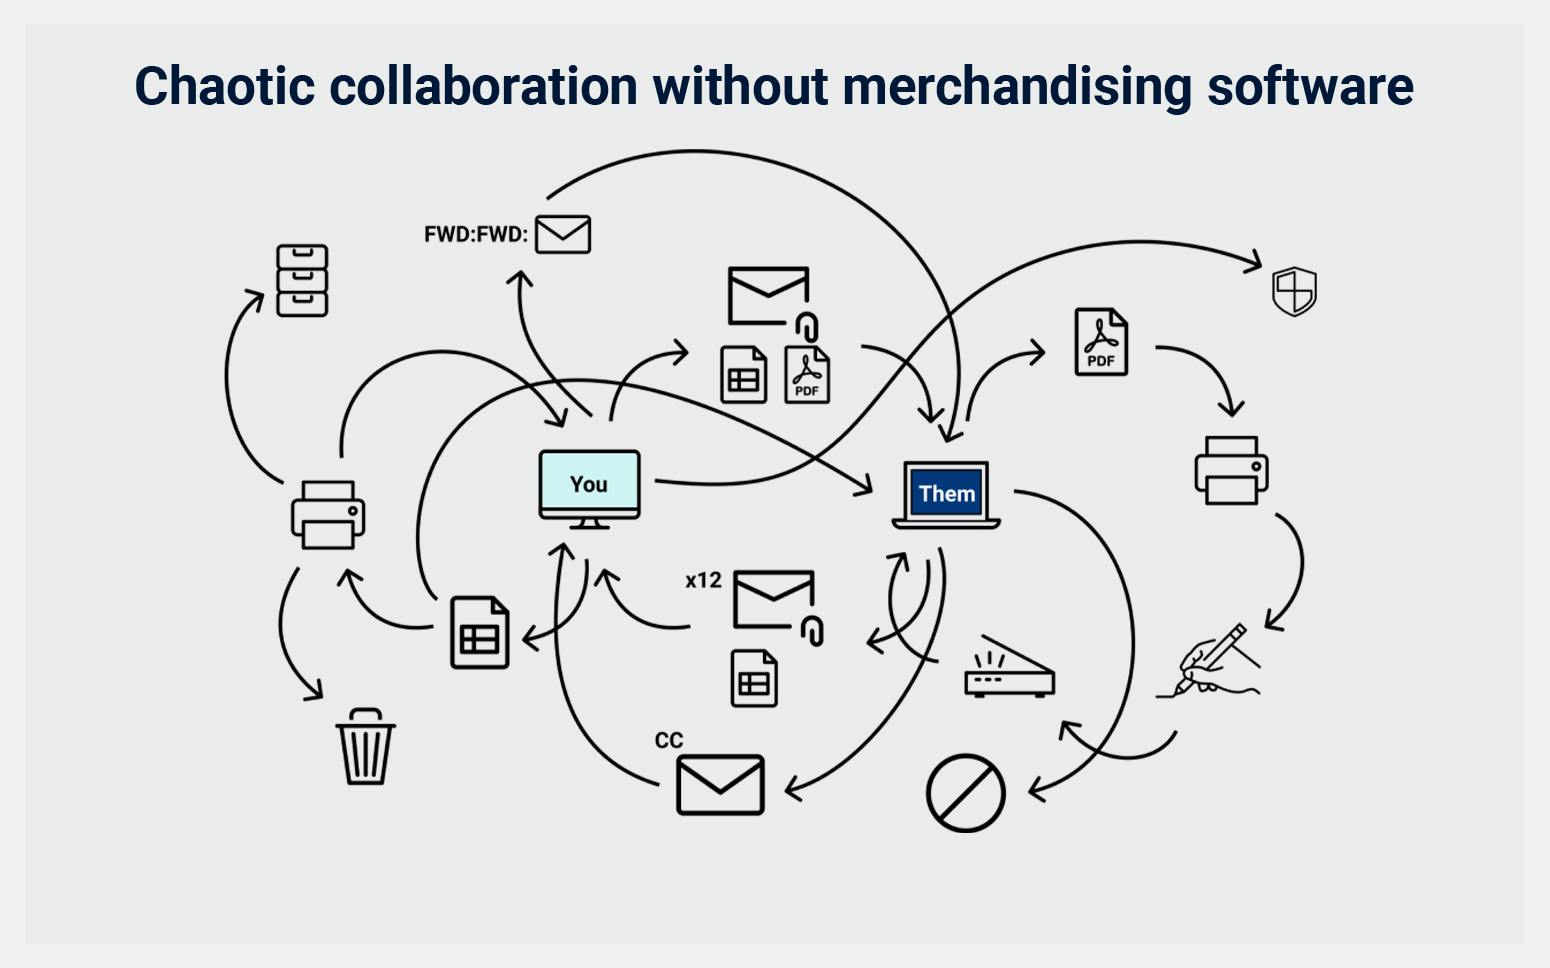 Chaotic collaboration without merchandising software